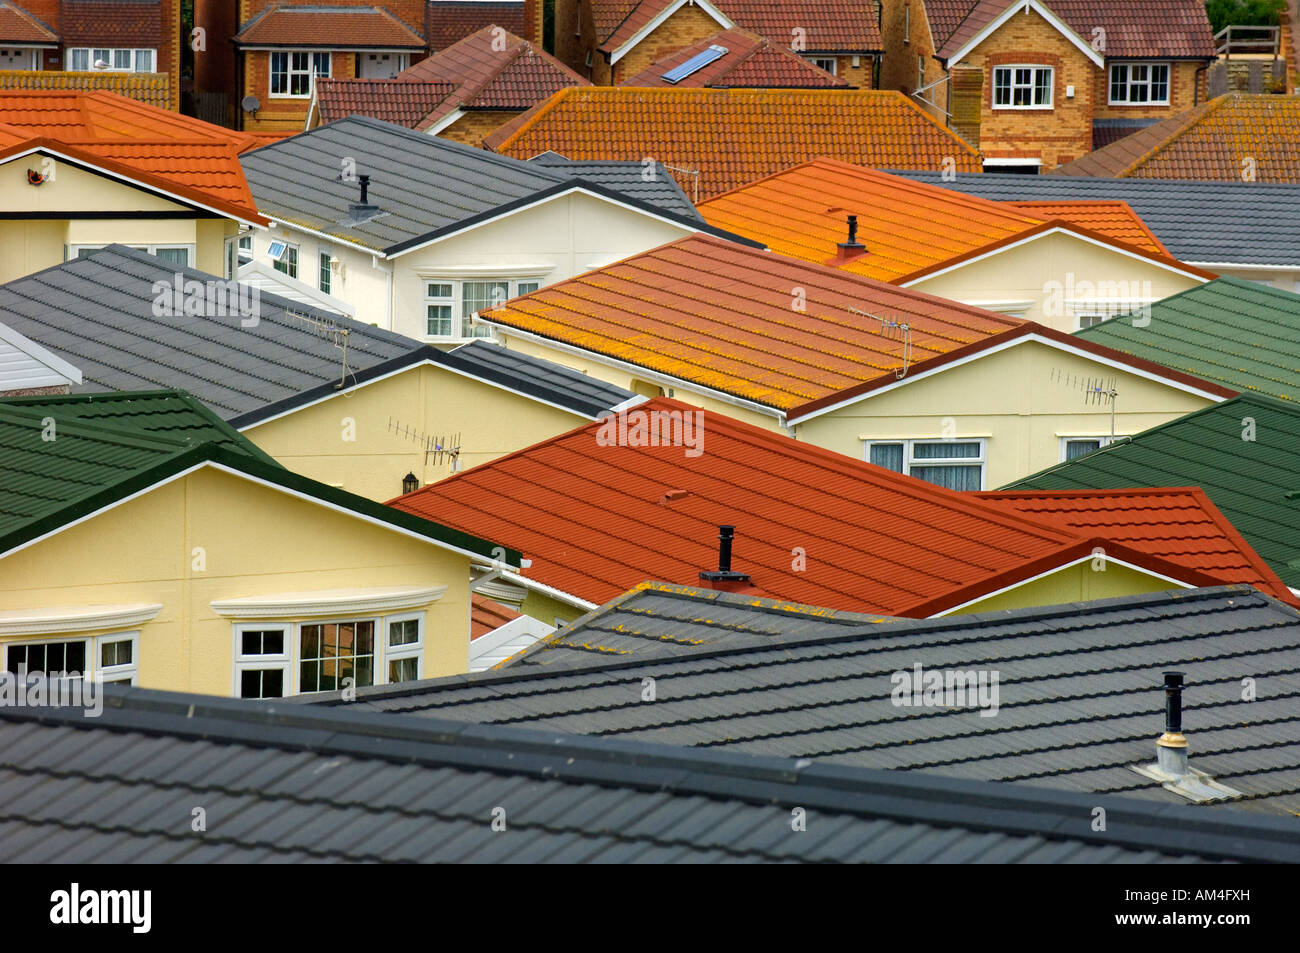 A view across the roof tops of a mobile home park. Picture by Jim Holden. - Stock Image